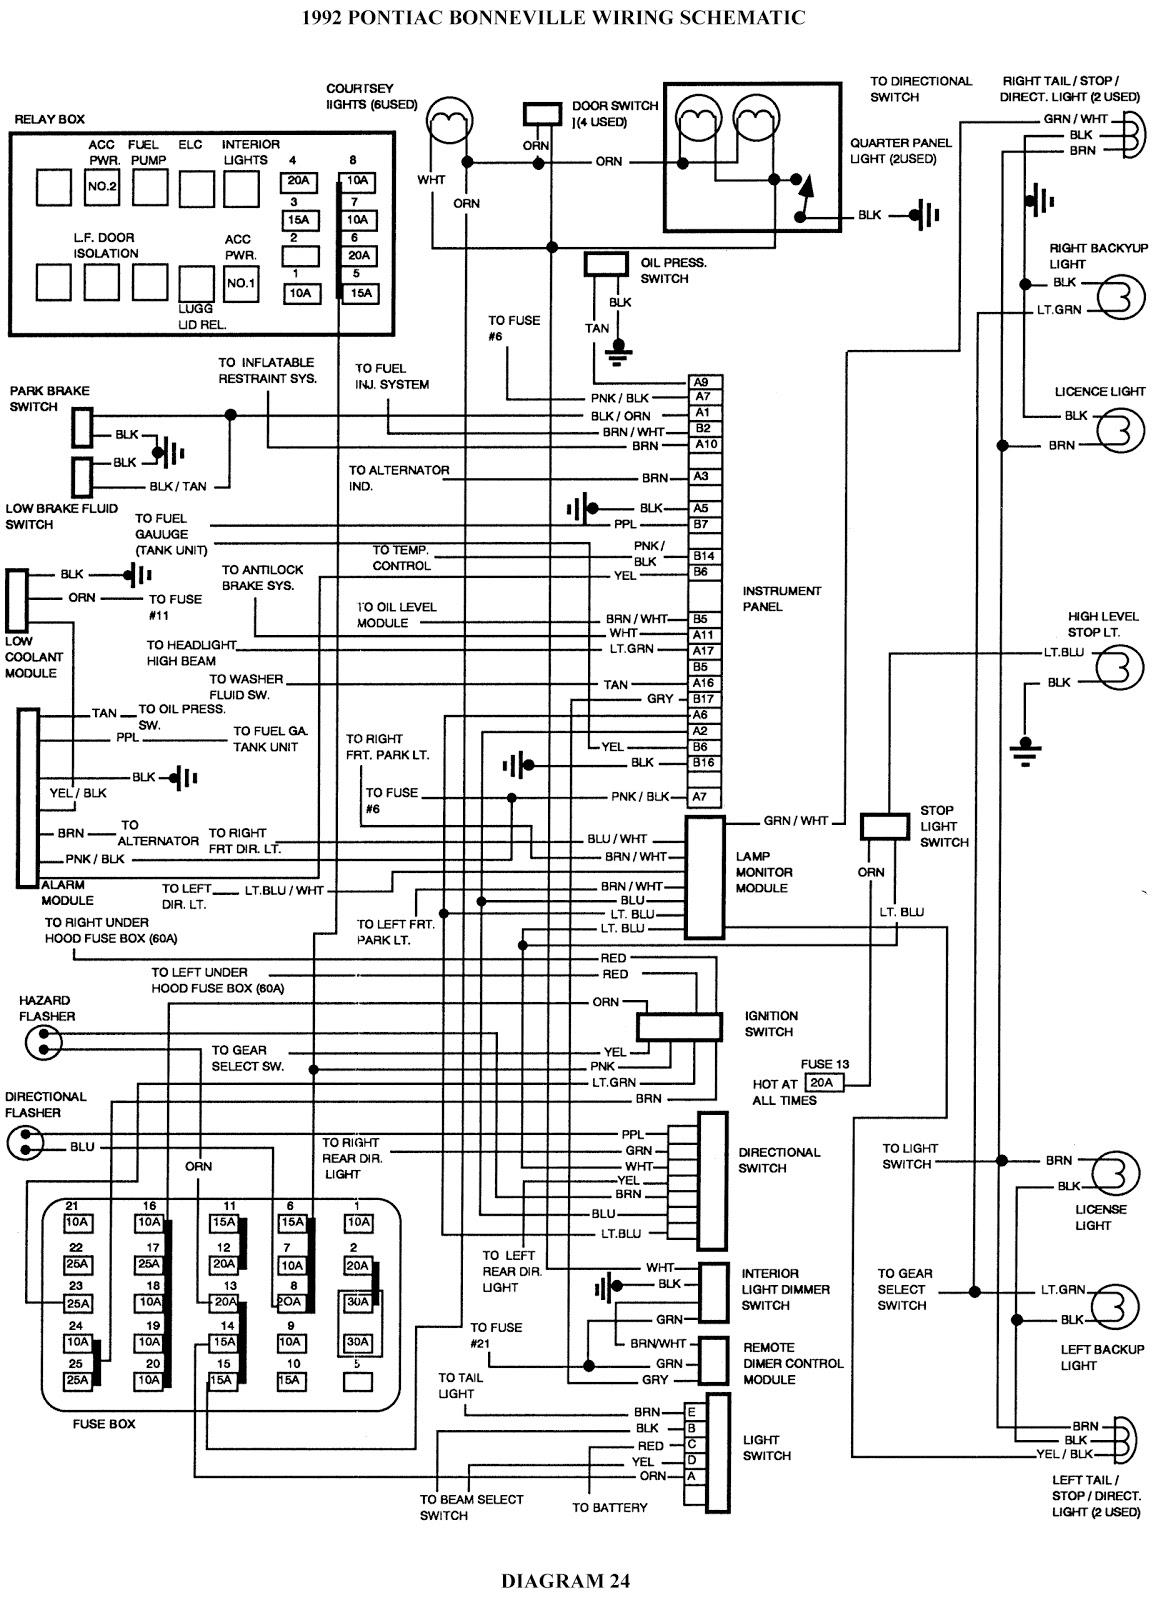 0001 2004 pontiac bonneville wiring schematic 2004 wirning diagrams 2000 pontiac montana wiring diagram at n-0.co